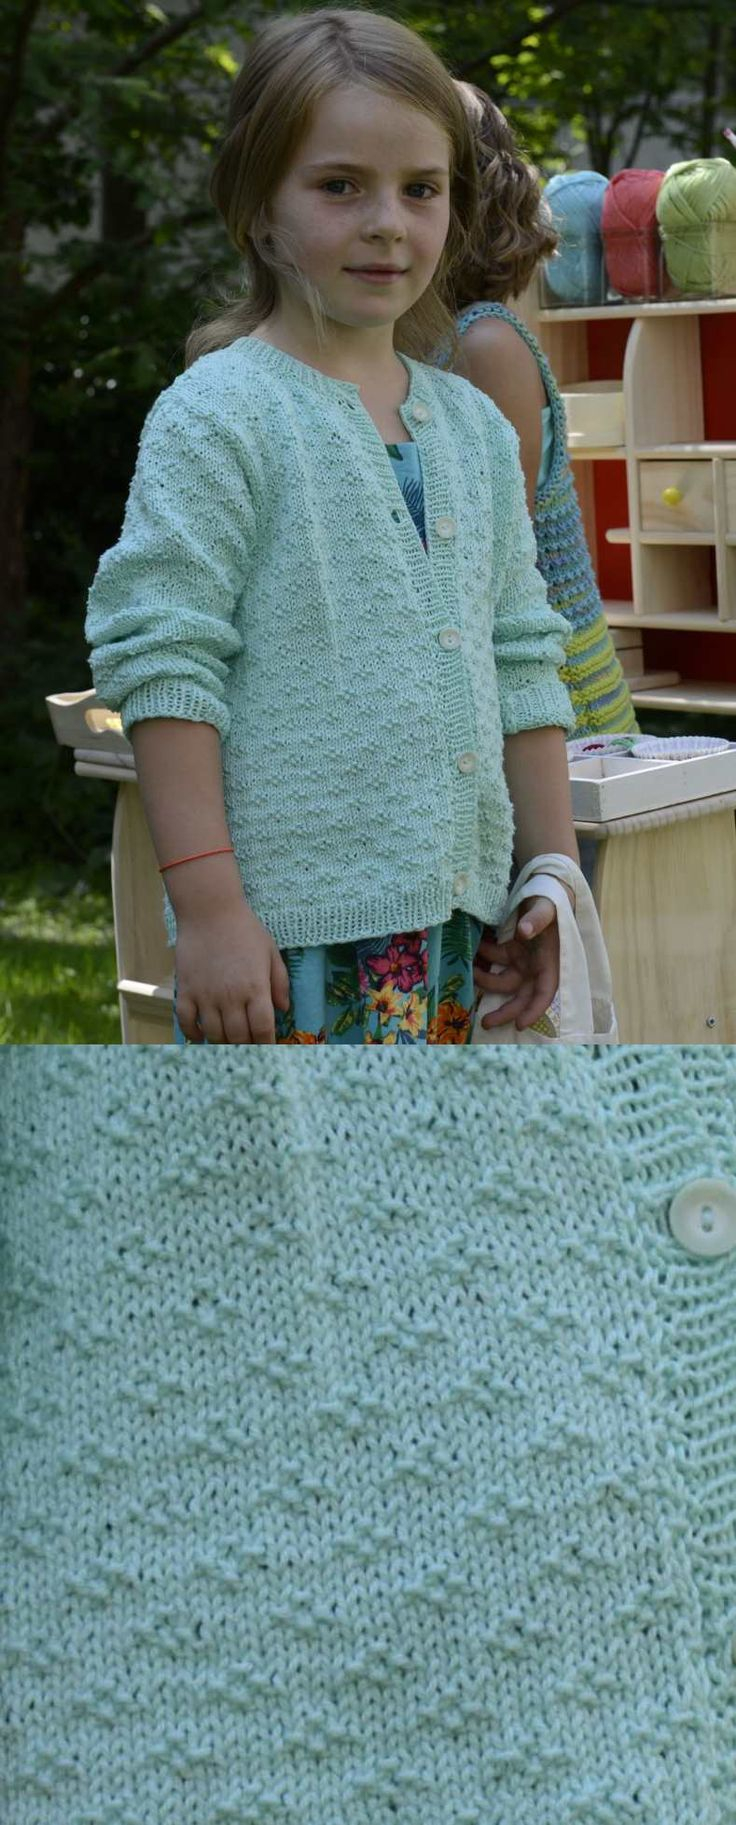 Rivalry Knitting Patterns Ba Knitting Patterns Ravelry Free Knitting Pattern For A Girls